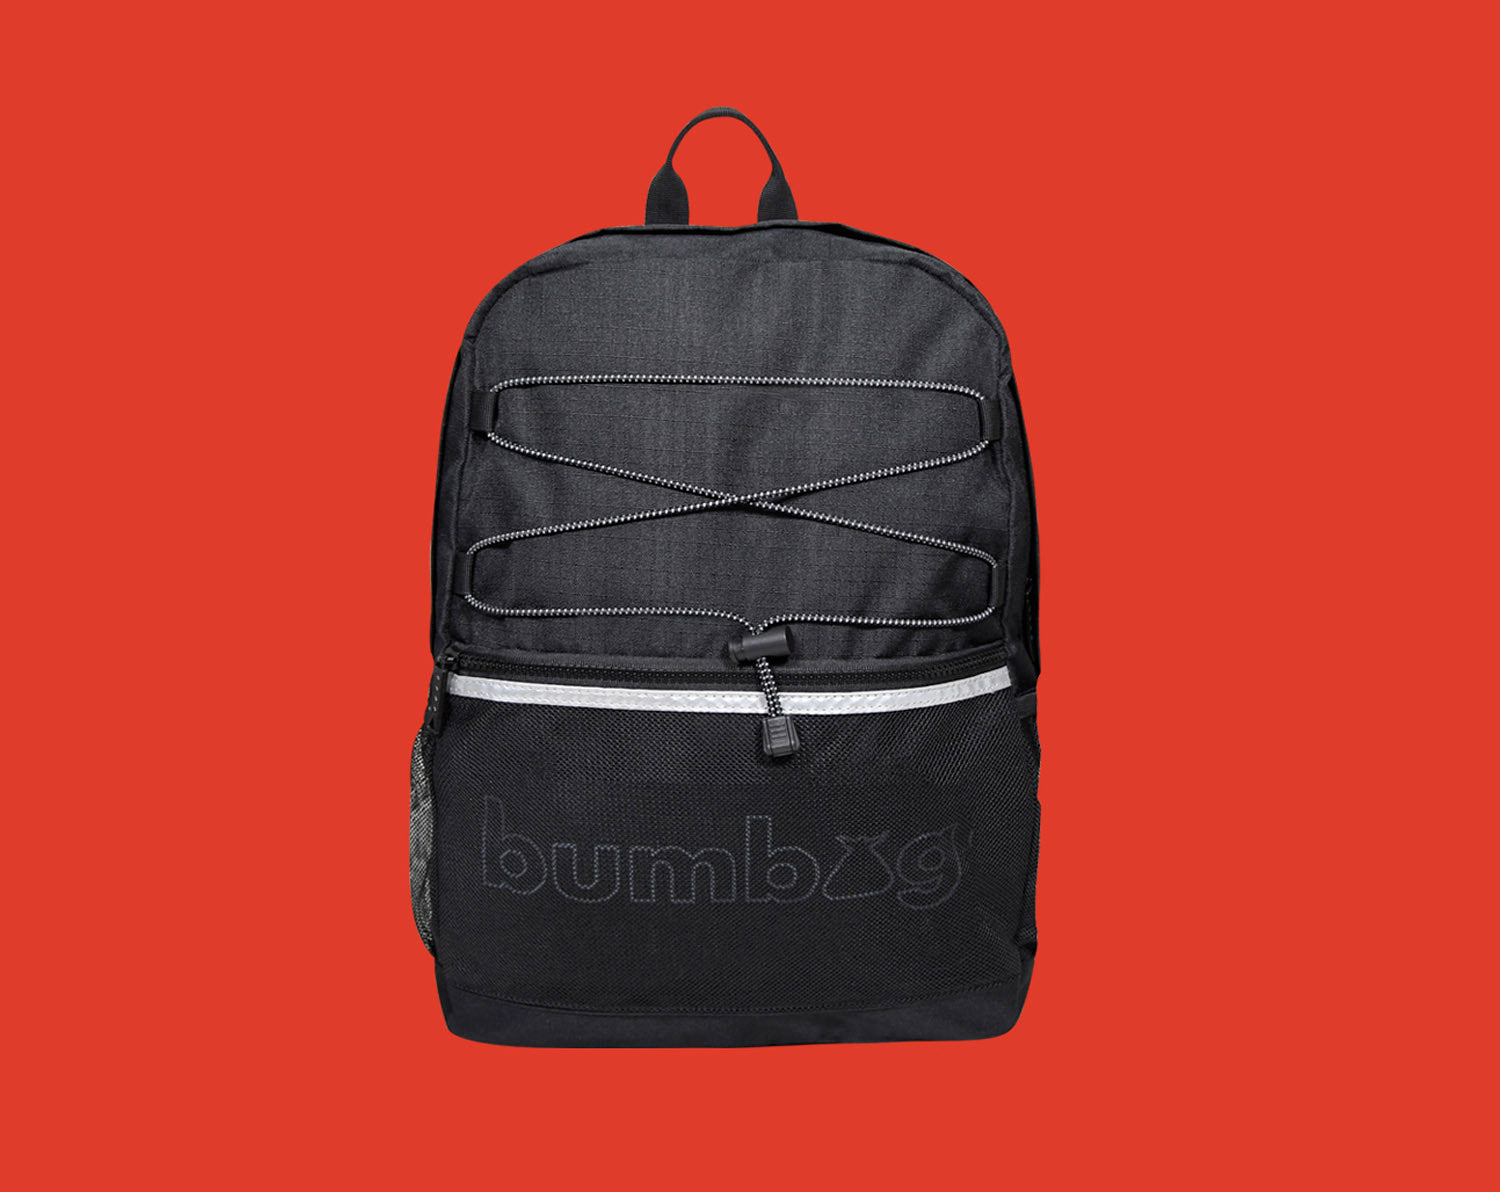 BumBag Sender Sport Backpack Black